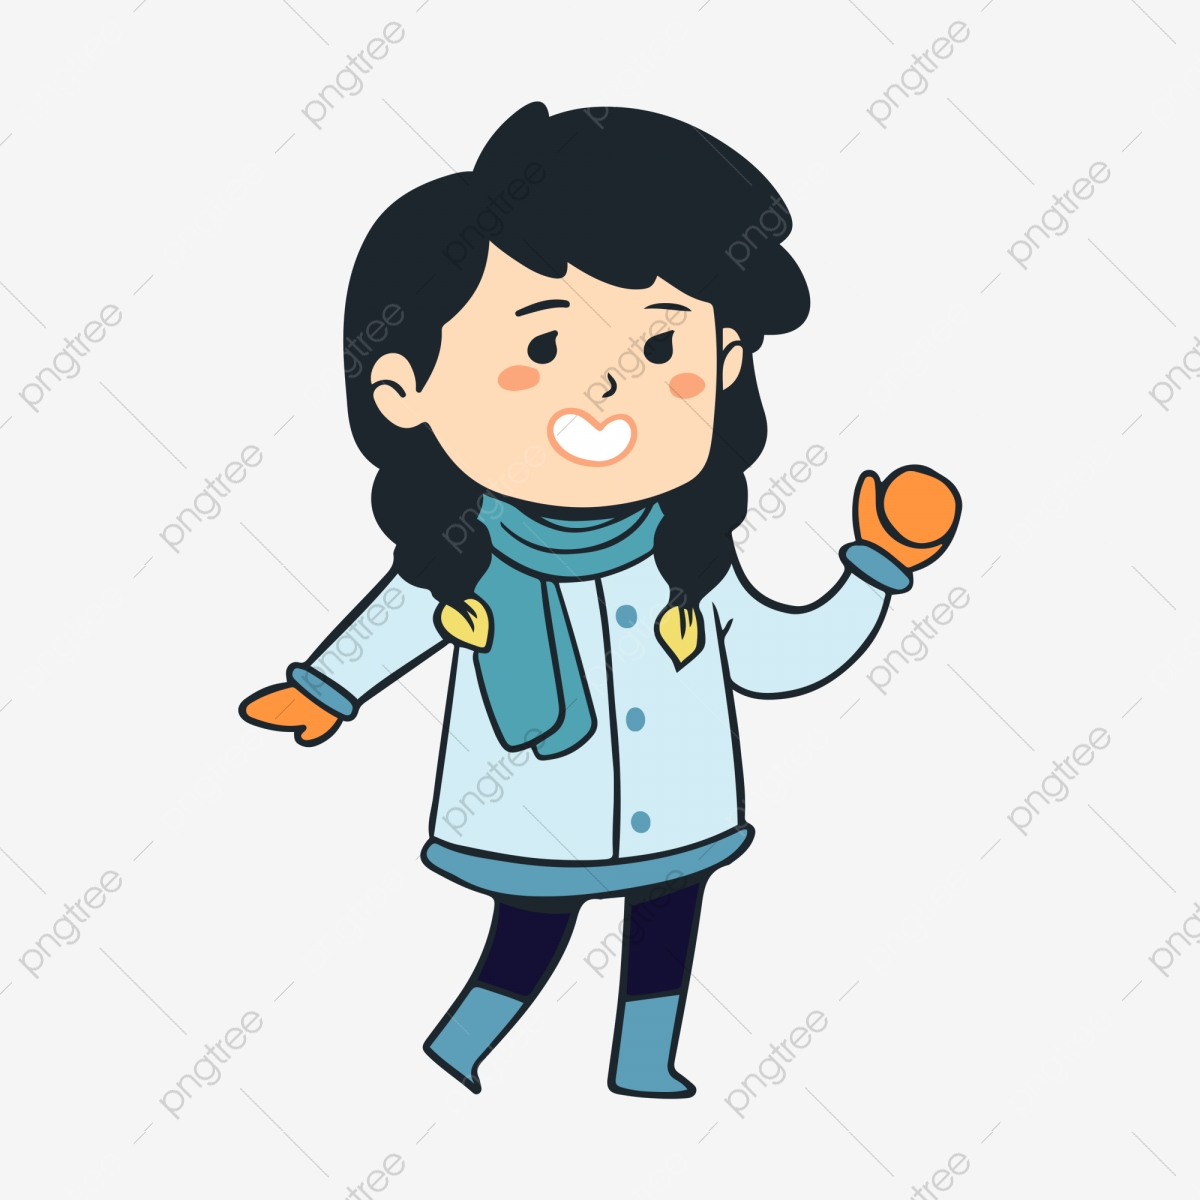 Snowy day snow outdoor. Clipart winter character